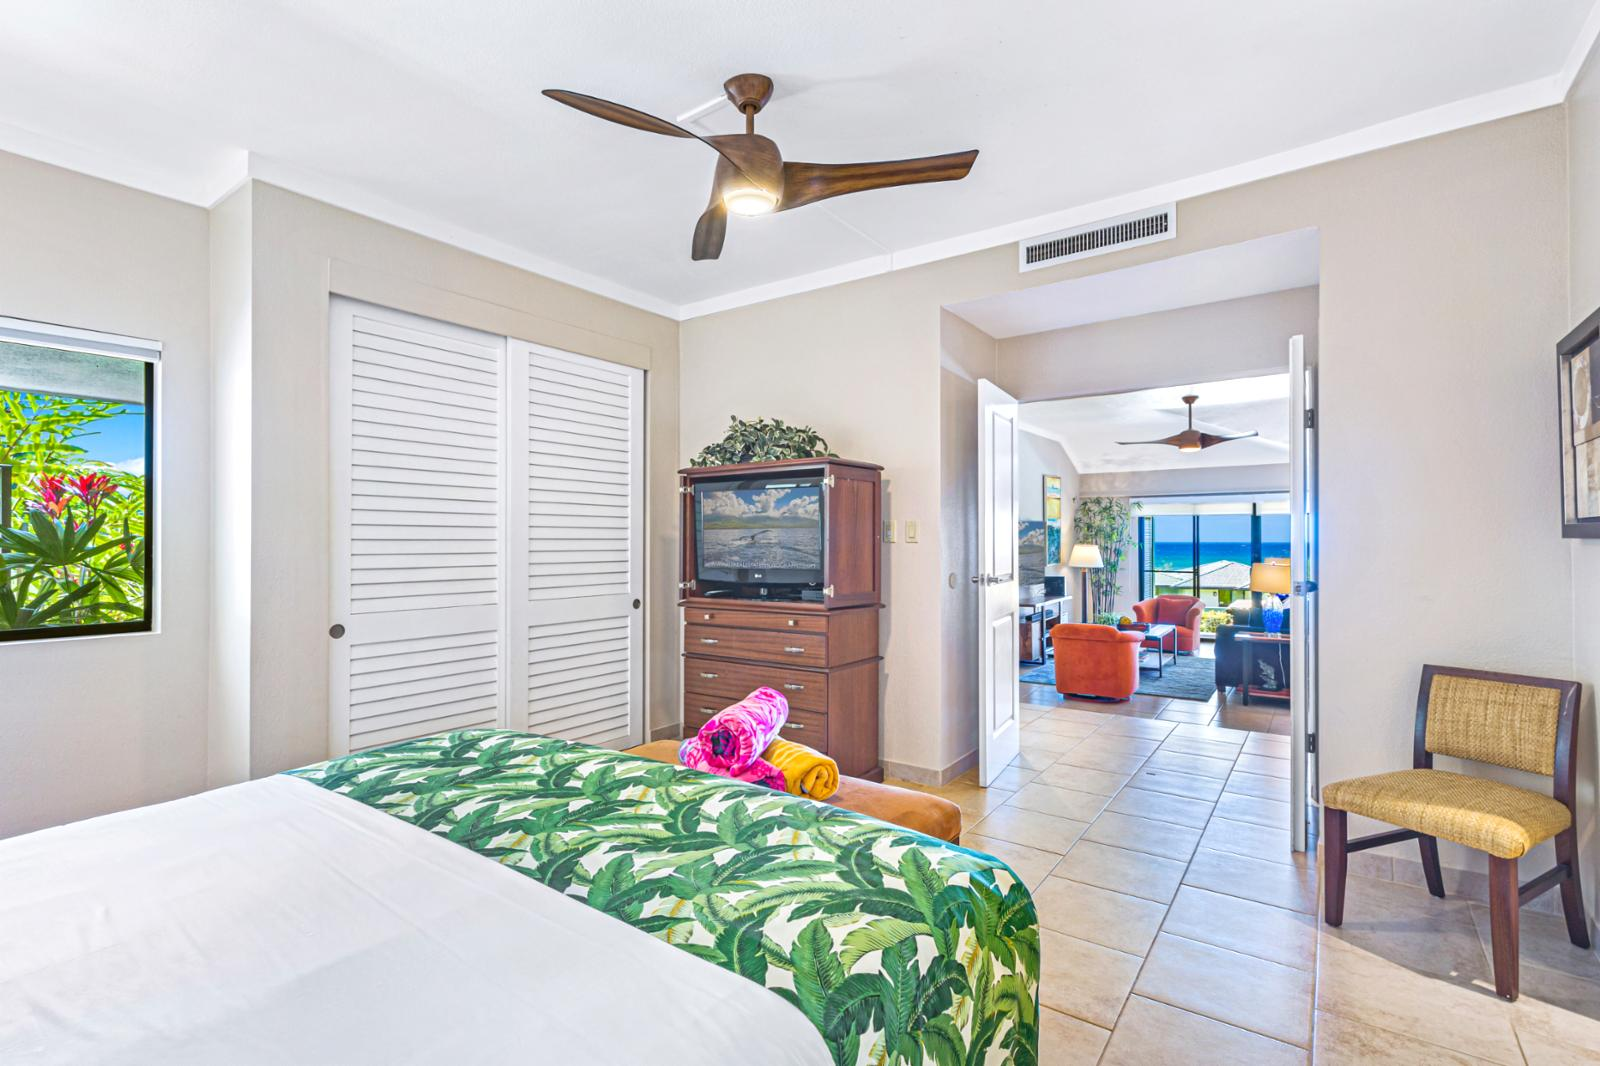 Easy access to the master bedroom from the living area.